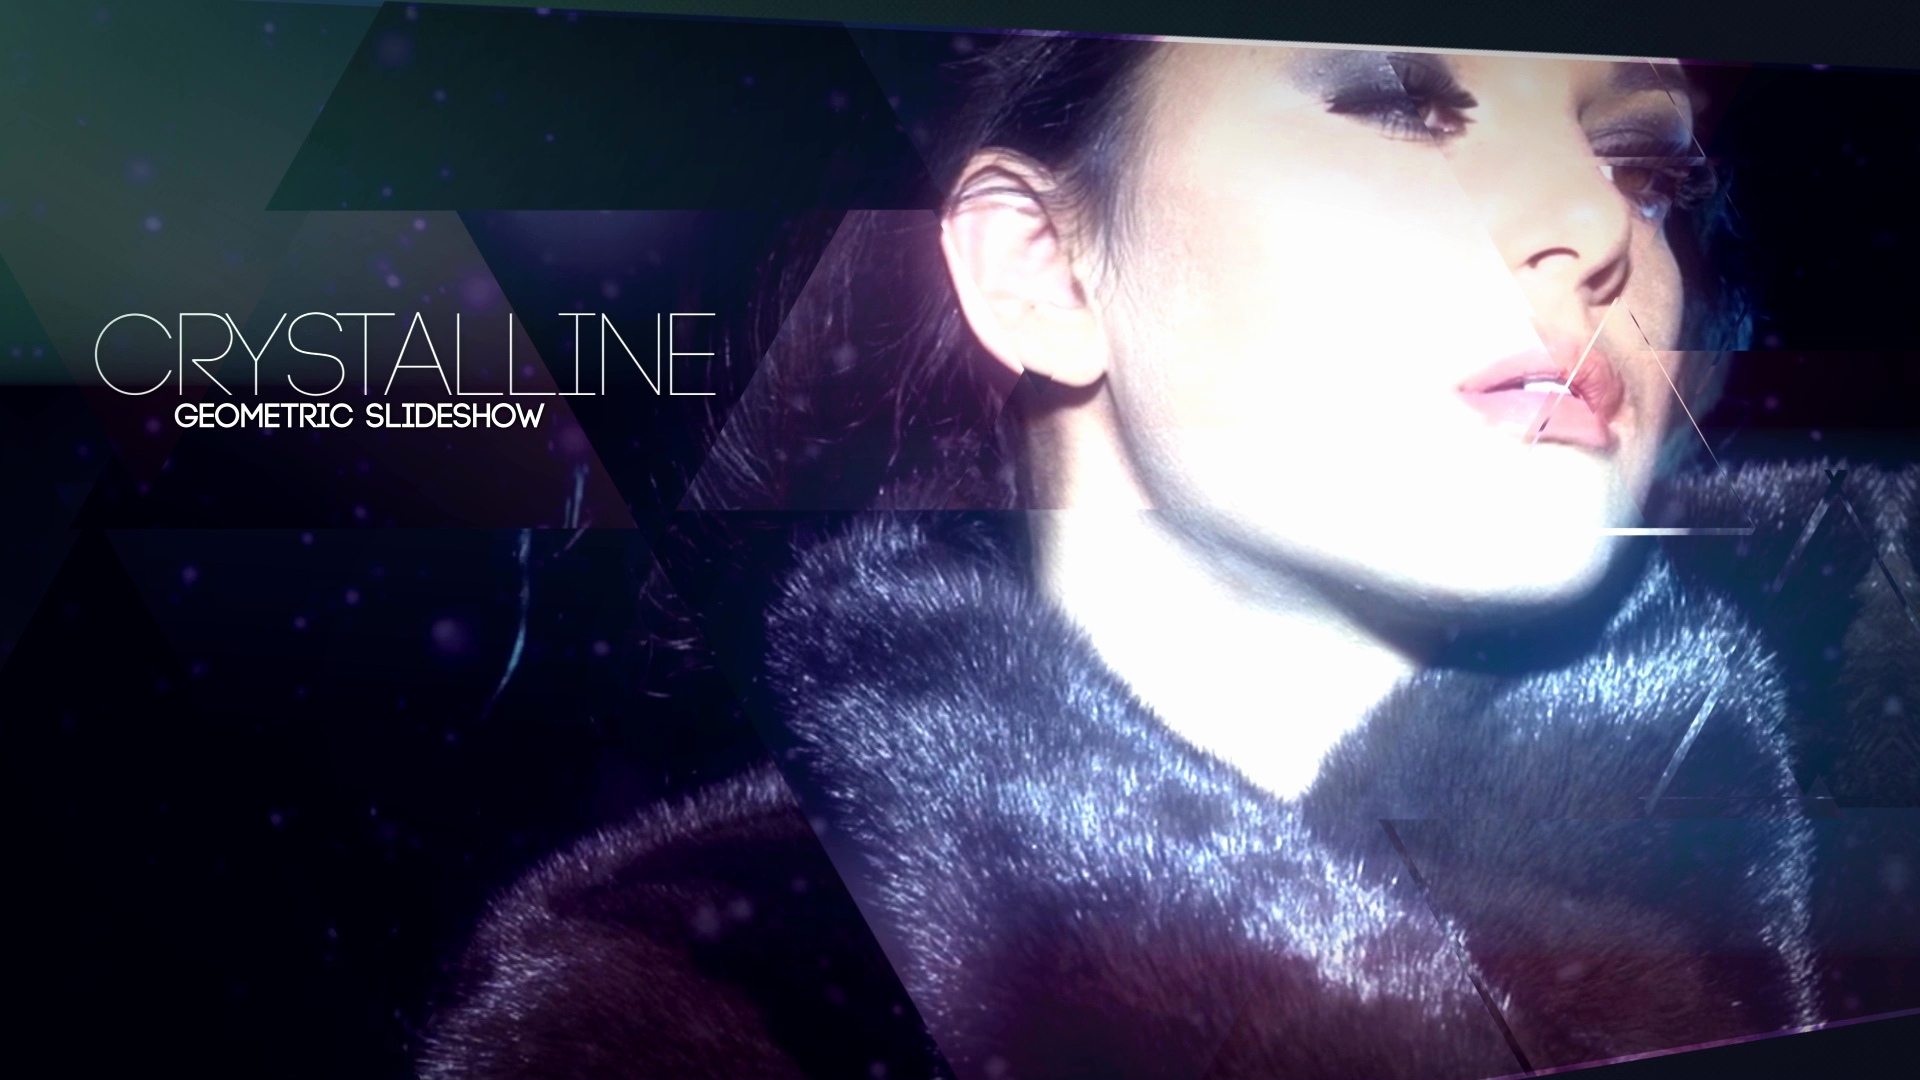 After Effects Slideshow Template Awesome Crystalline Geometric Slideshow after Effects Template